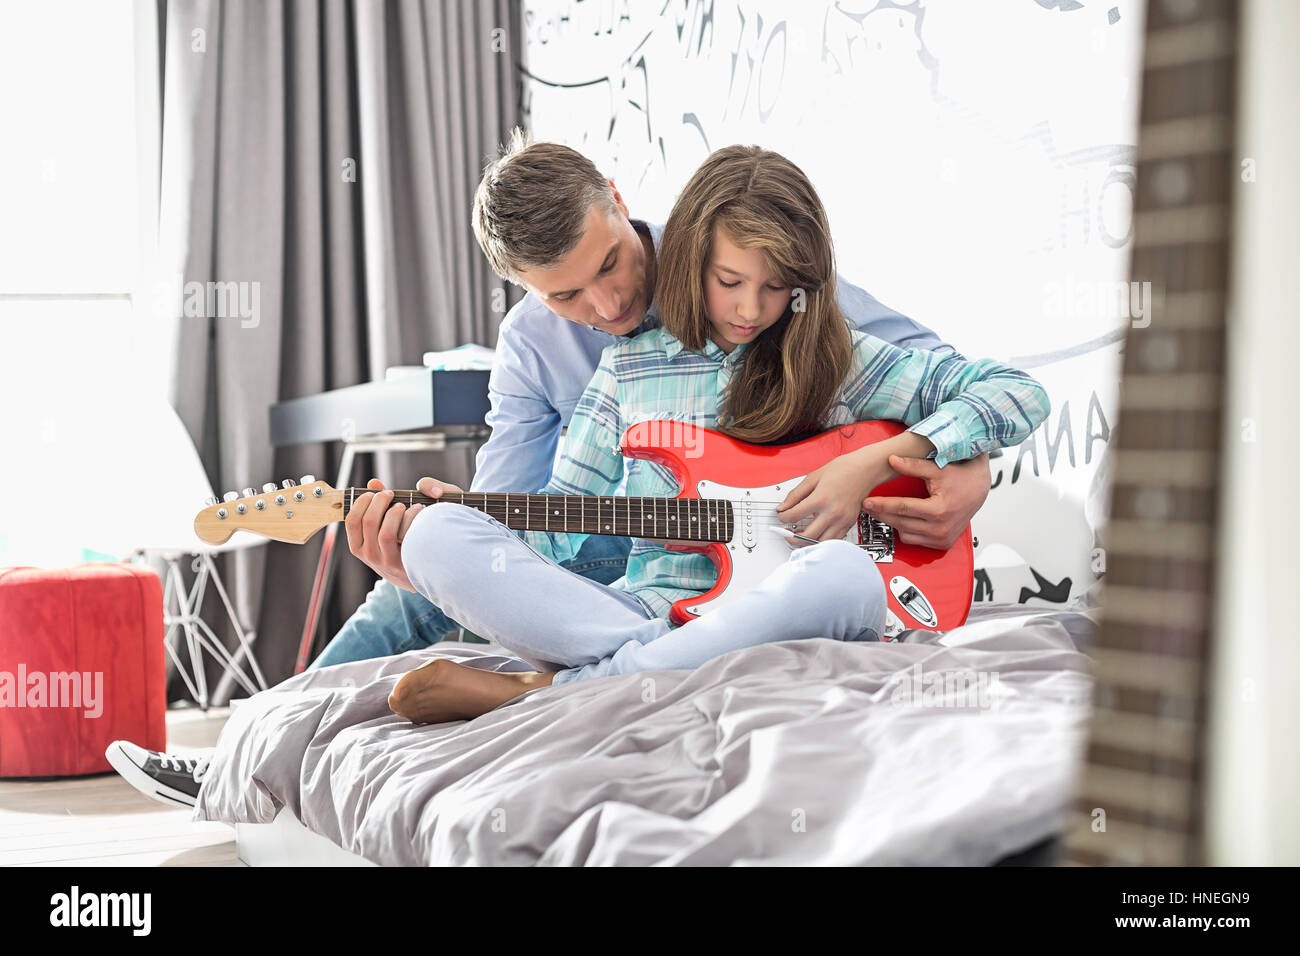 Father teaching daughter to play guitar at home - Stock Image